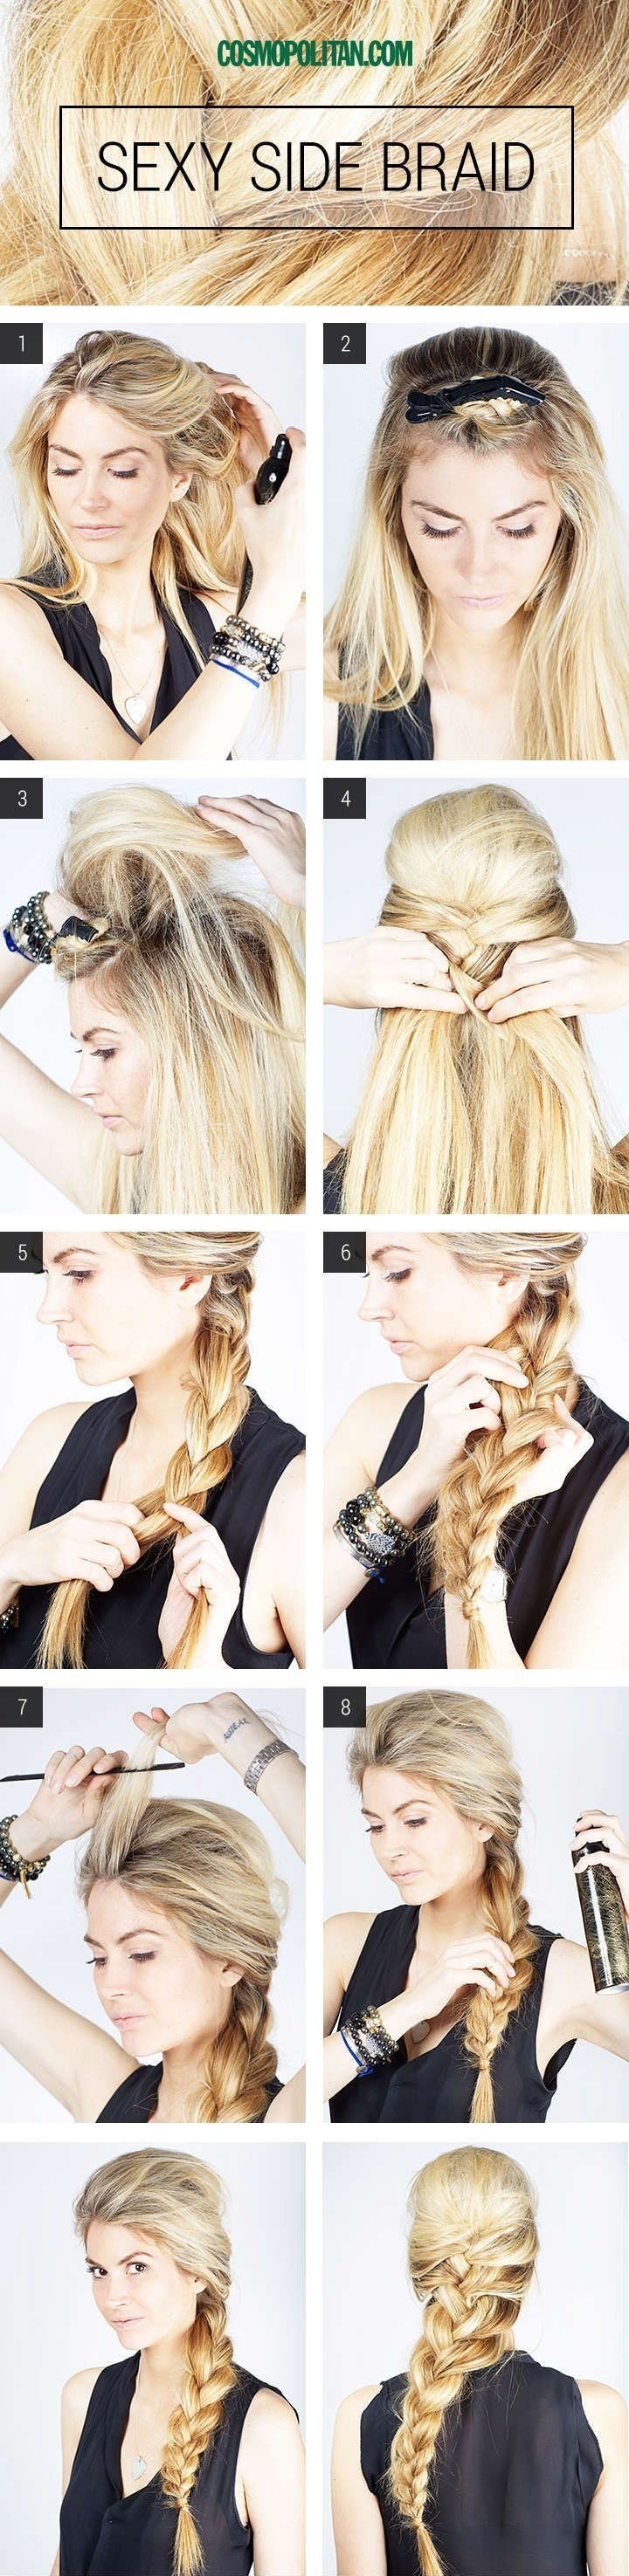 18 Simple Office Hairstyles for Women: Sexy Side Braid